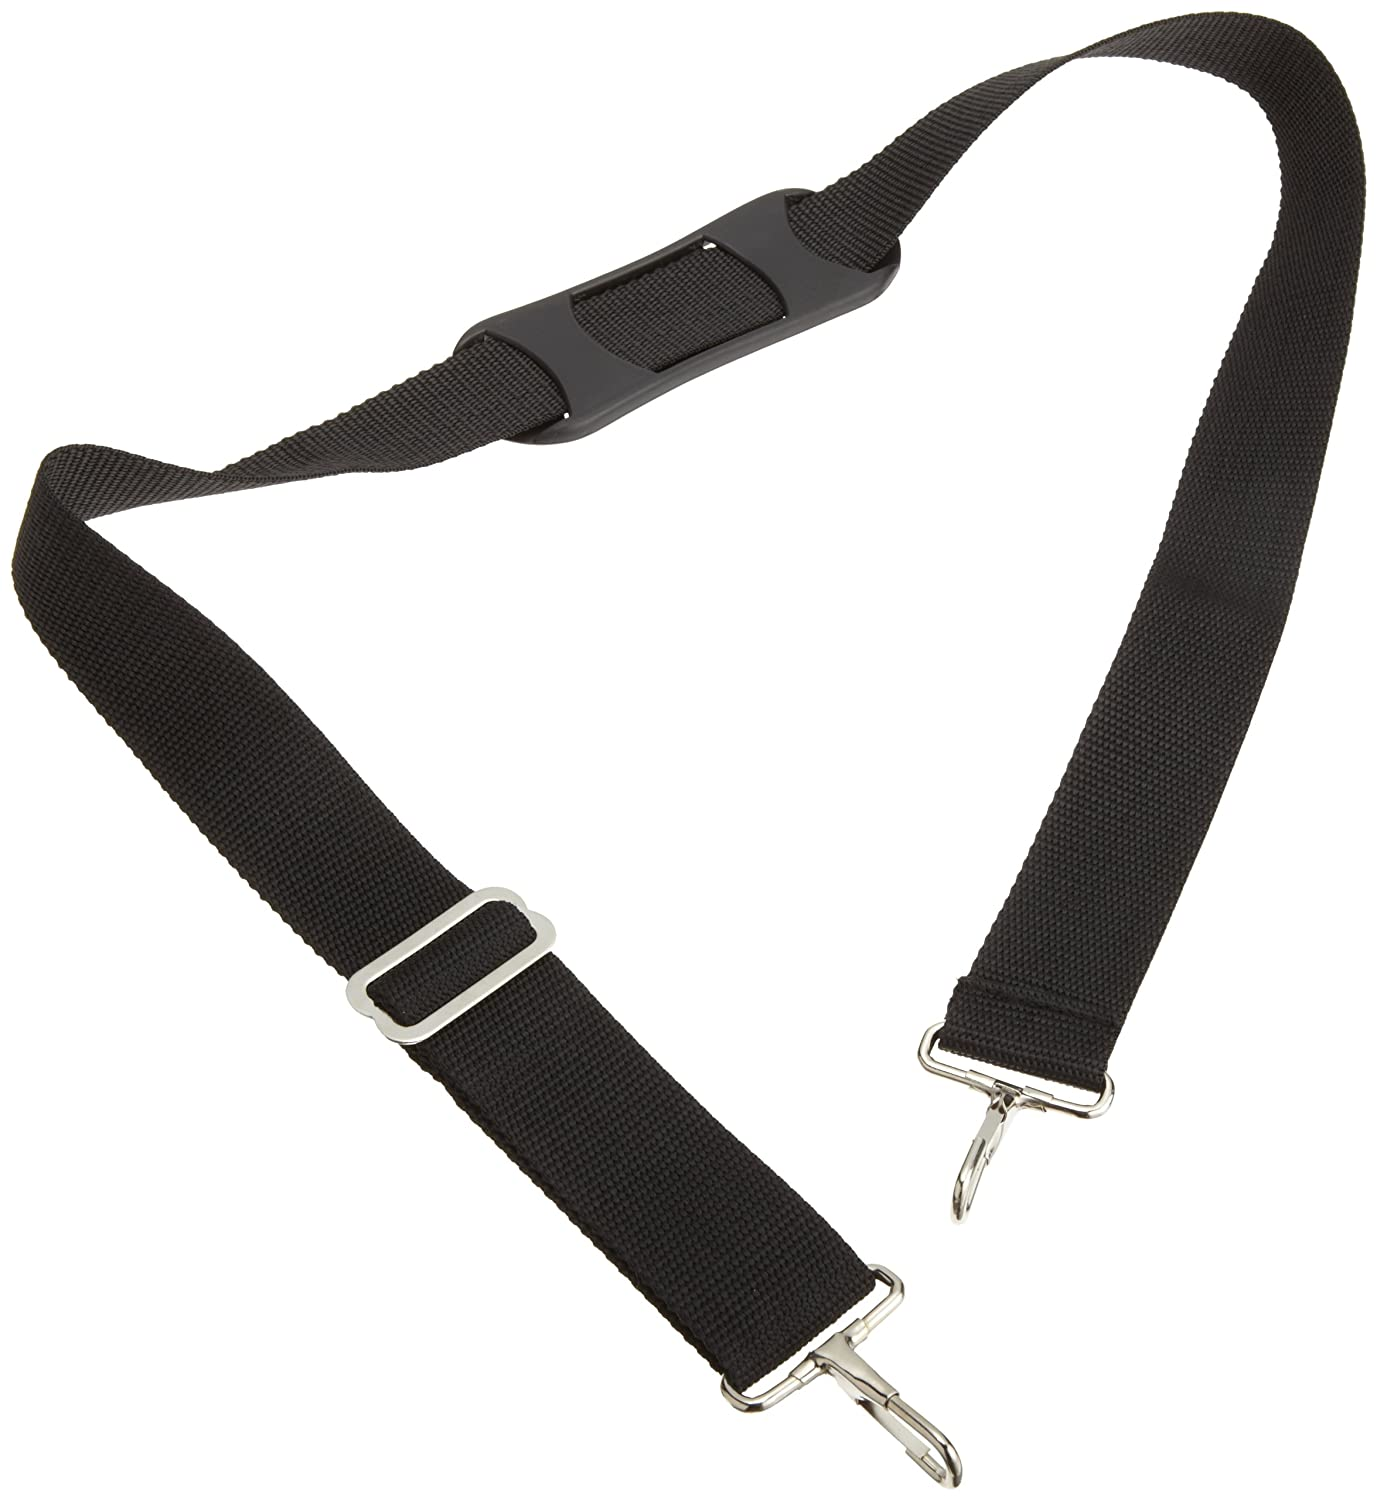 Golf Bag Shoulder Straps Replacement 78